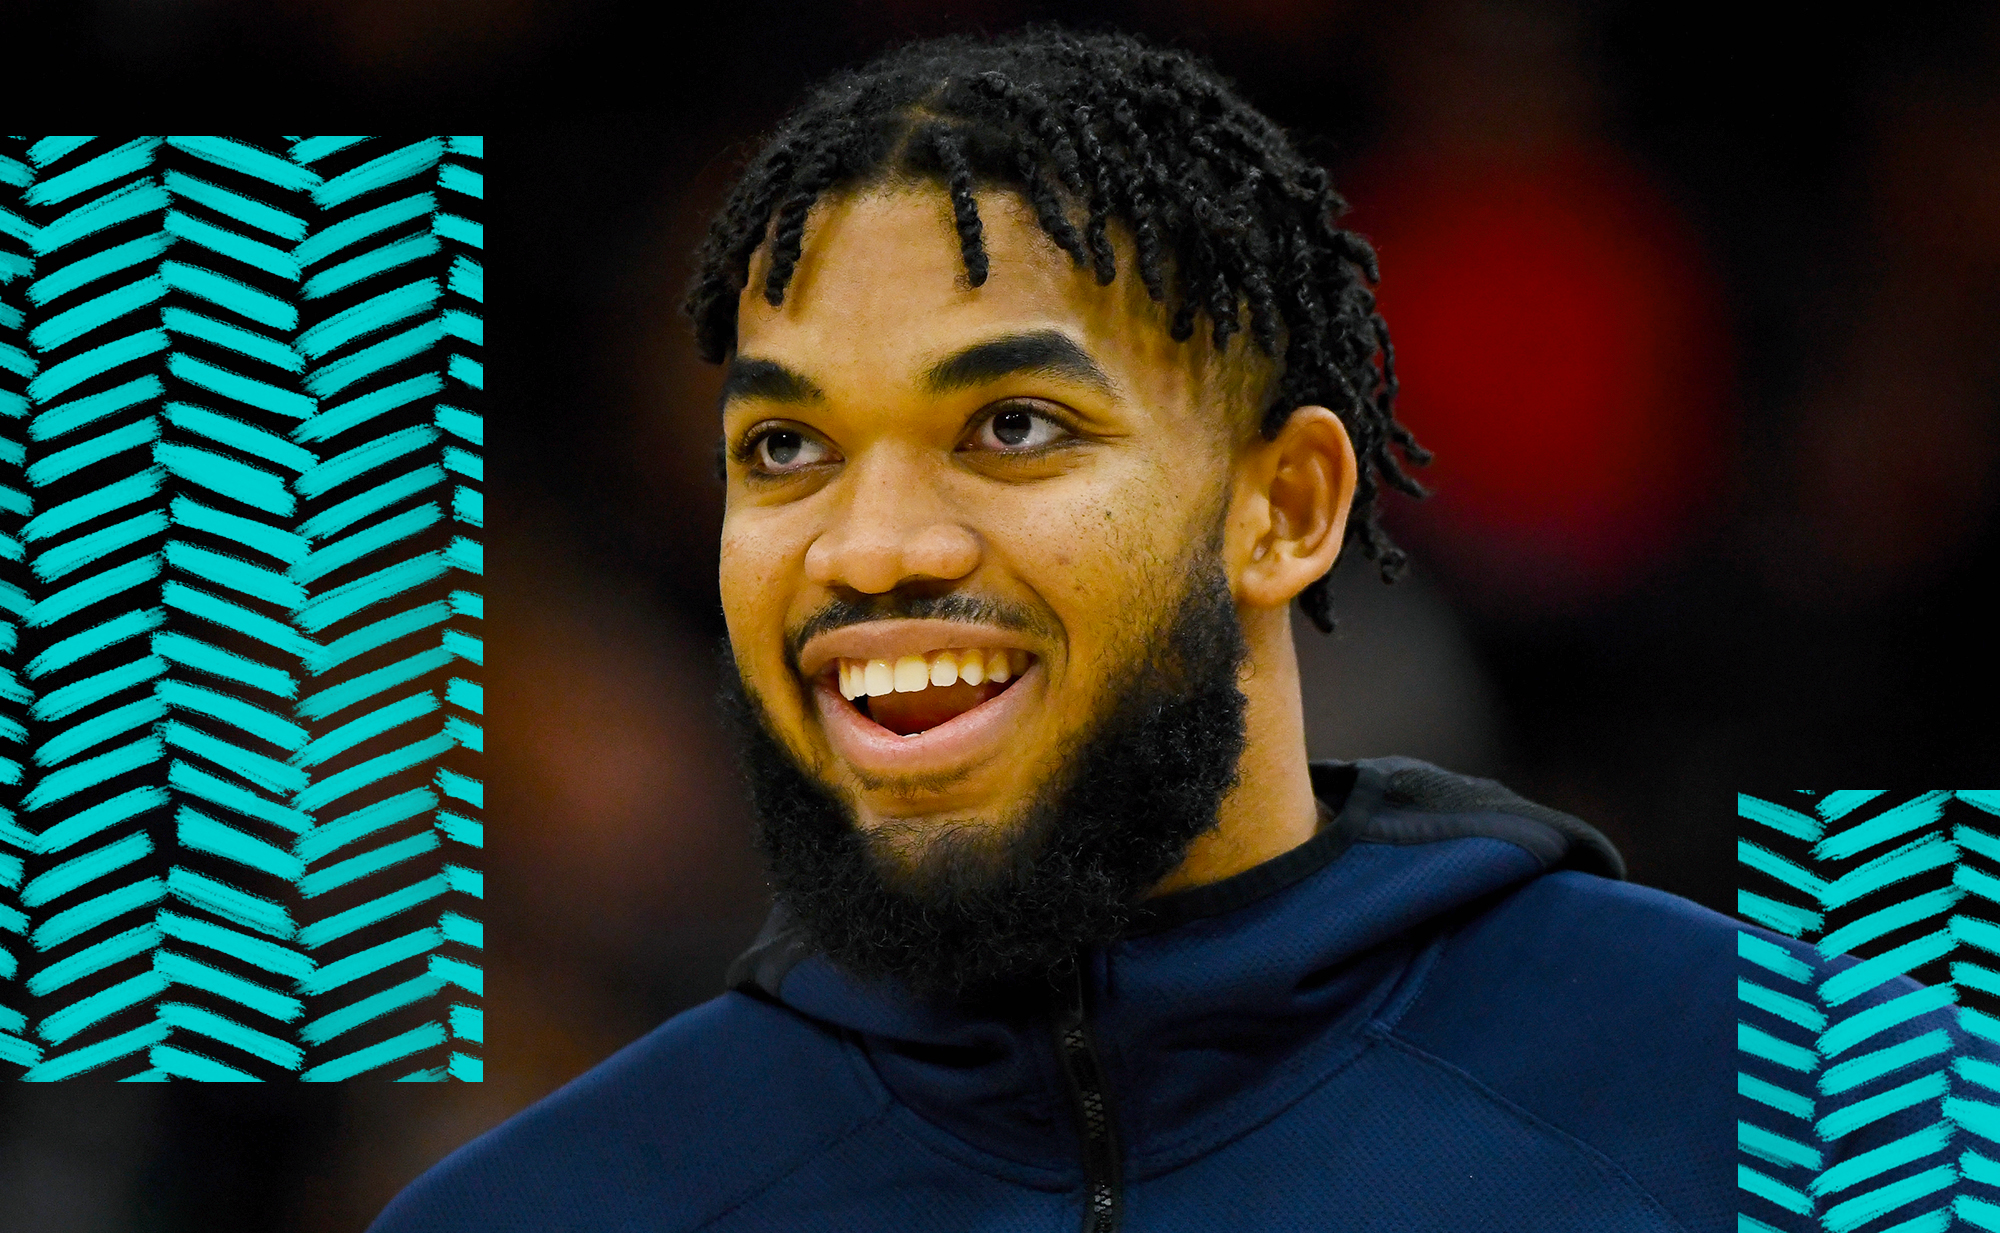 Karl-Anthony Towns' shooting was always elite. He just needed a coach to trust him